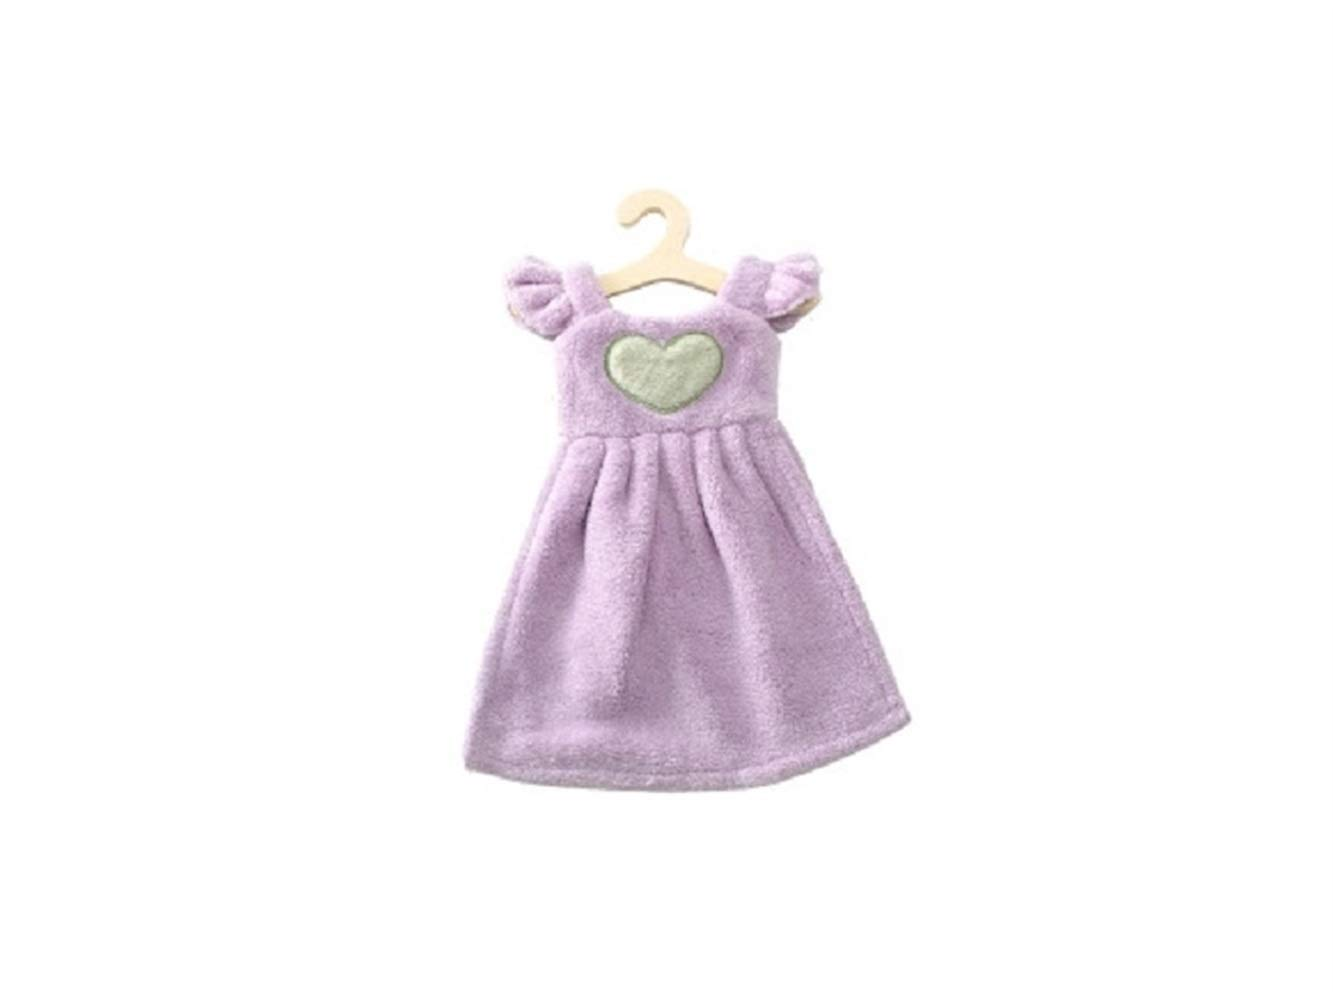 Kuiduo Household Princess Dress Hand Towel Cute Bathroom Towel with Hanging Cloth Exquisite (Color : Pink, Size : 36x25cm)